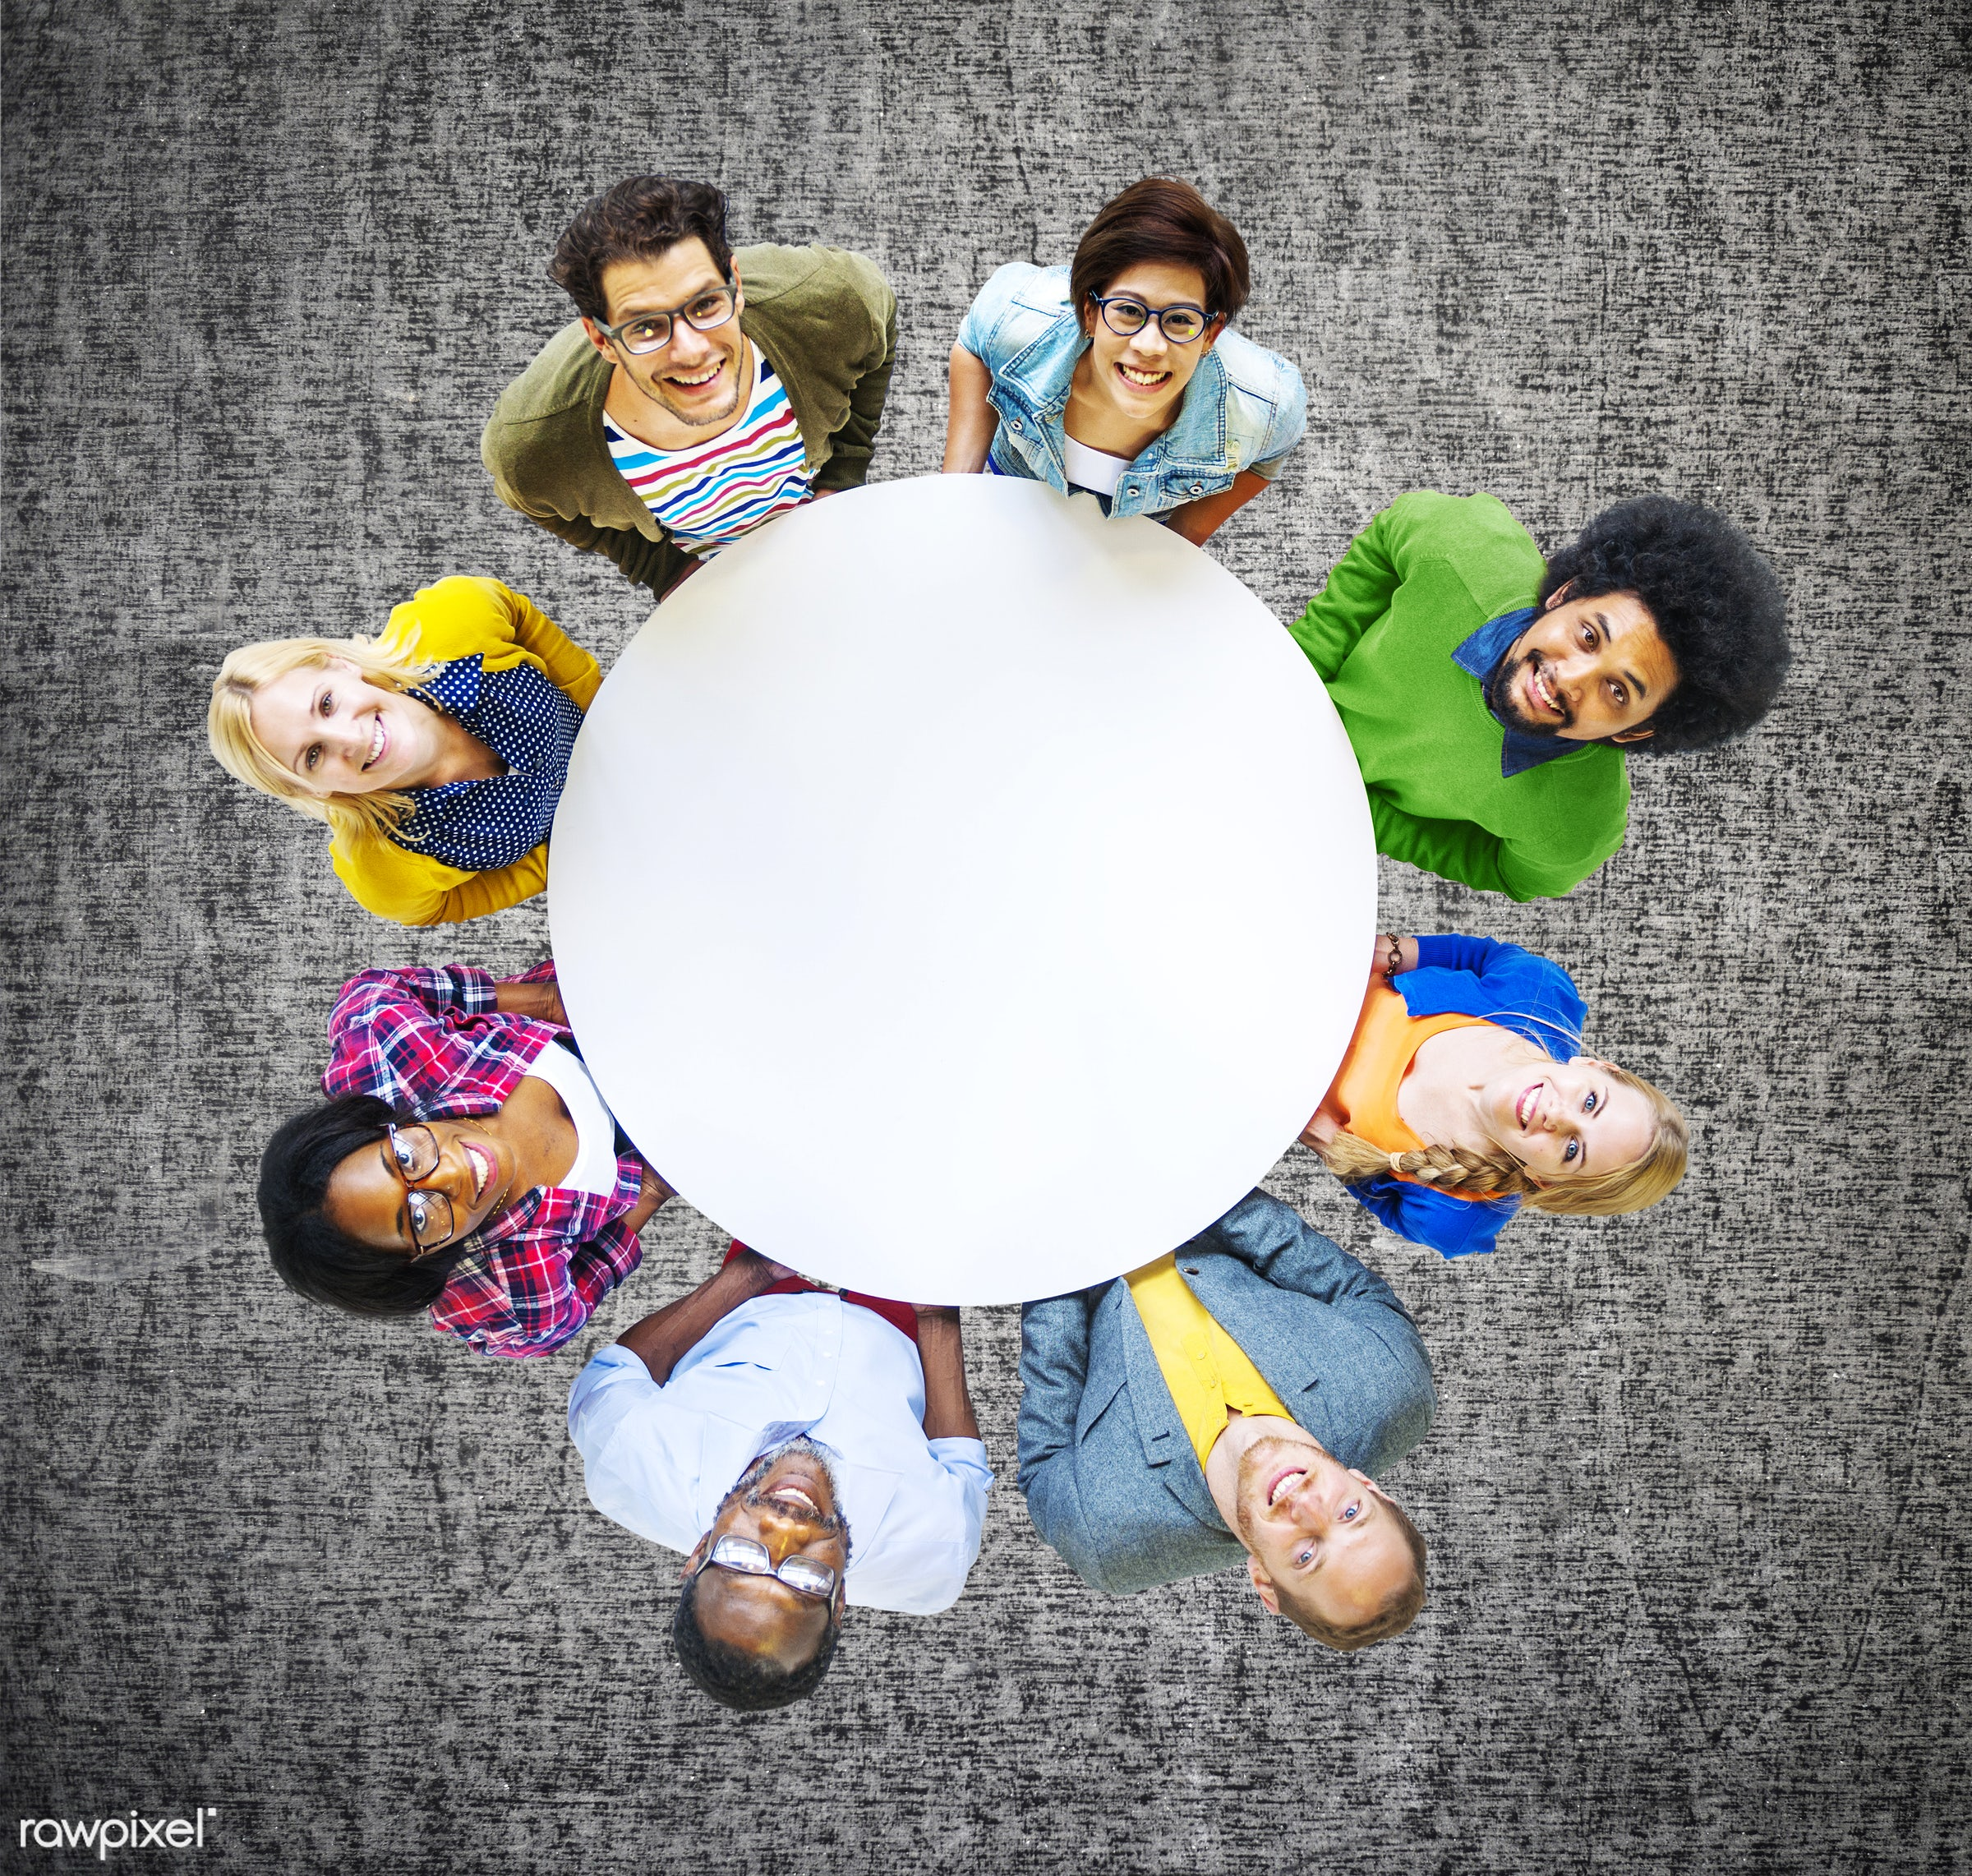 aerial view, african descent, asian ethnicity, blank, carpet, casual, cheerful, circle, colorful, communication, community,...